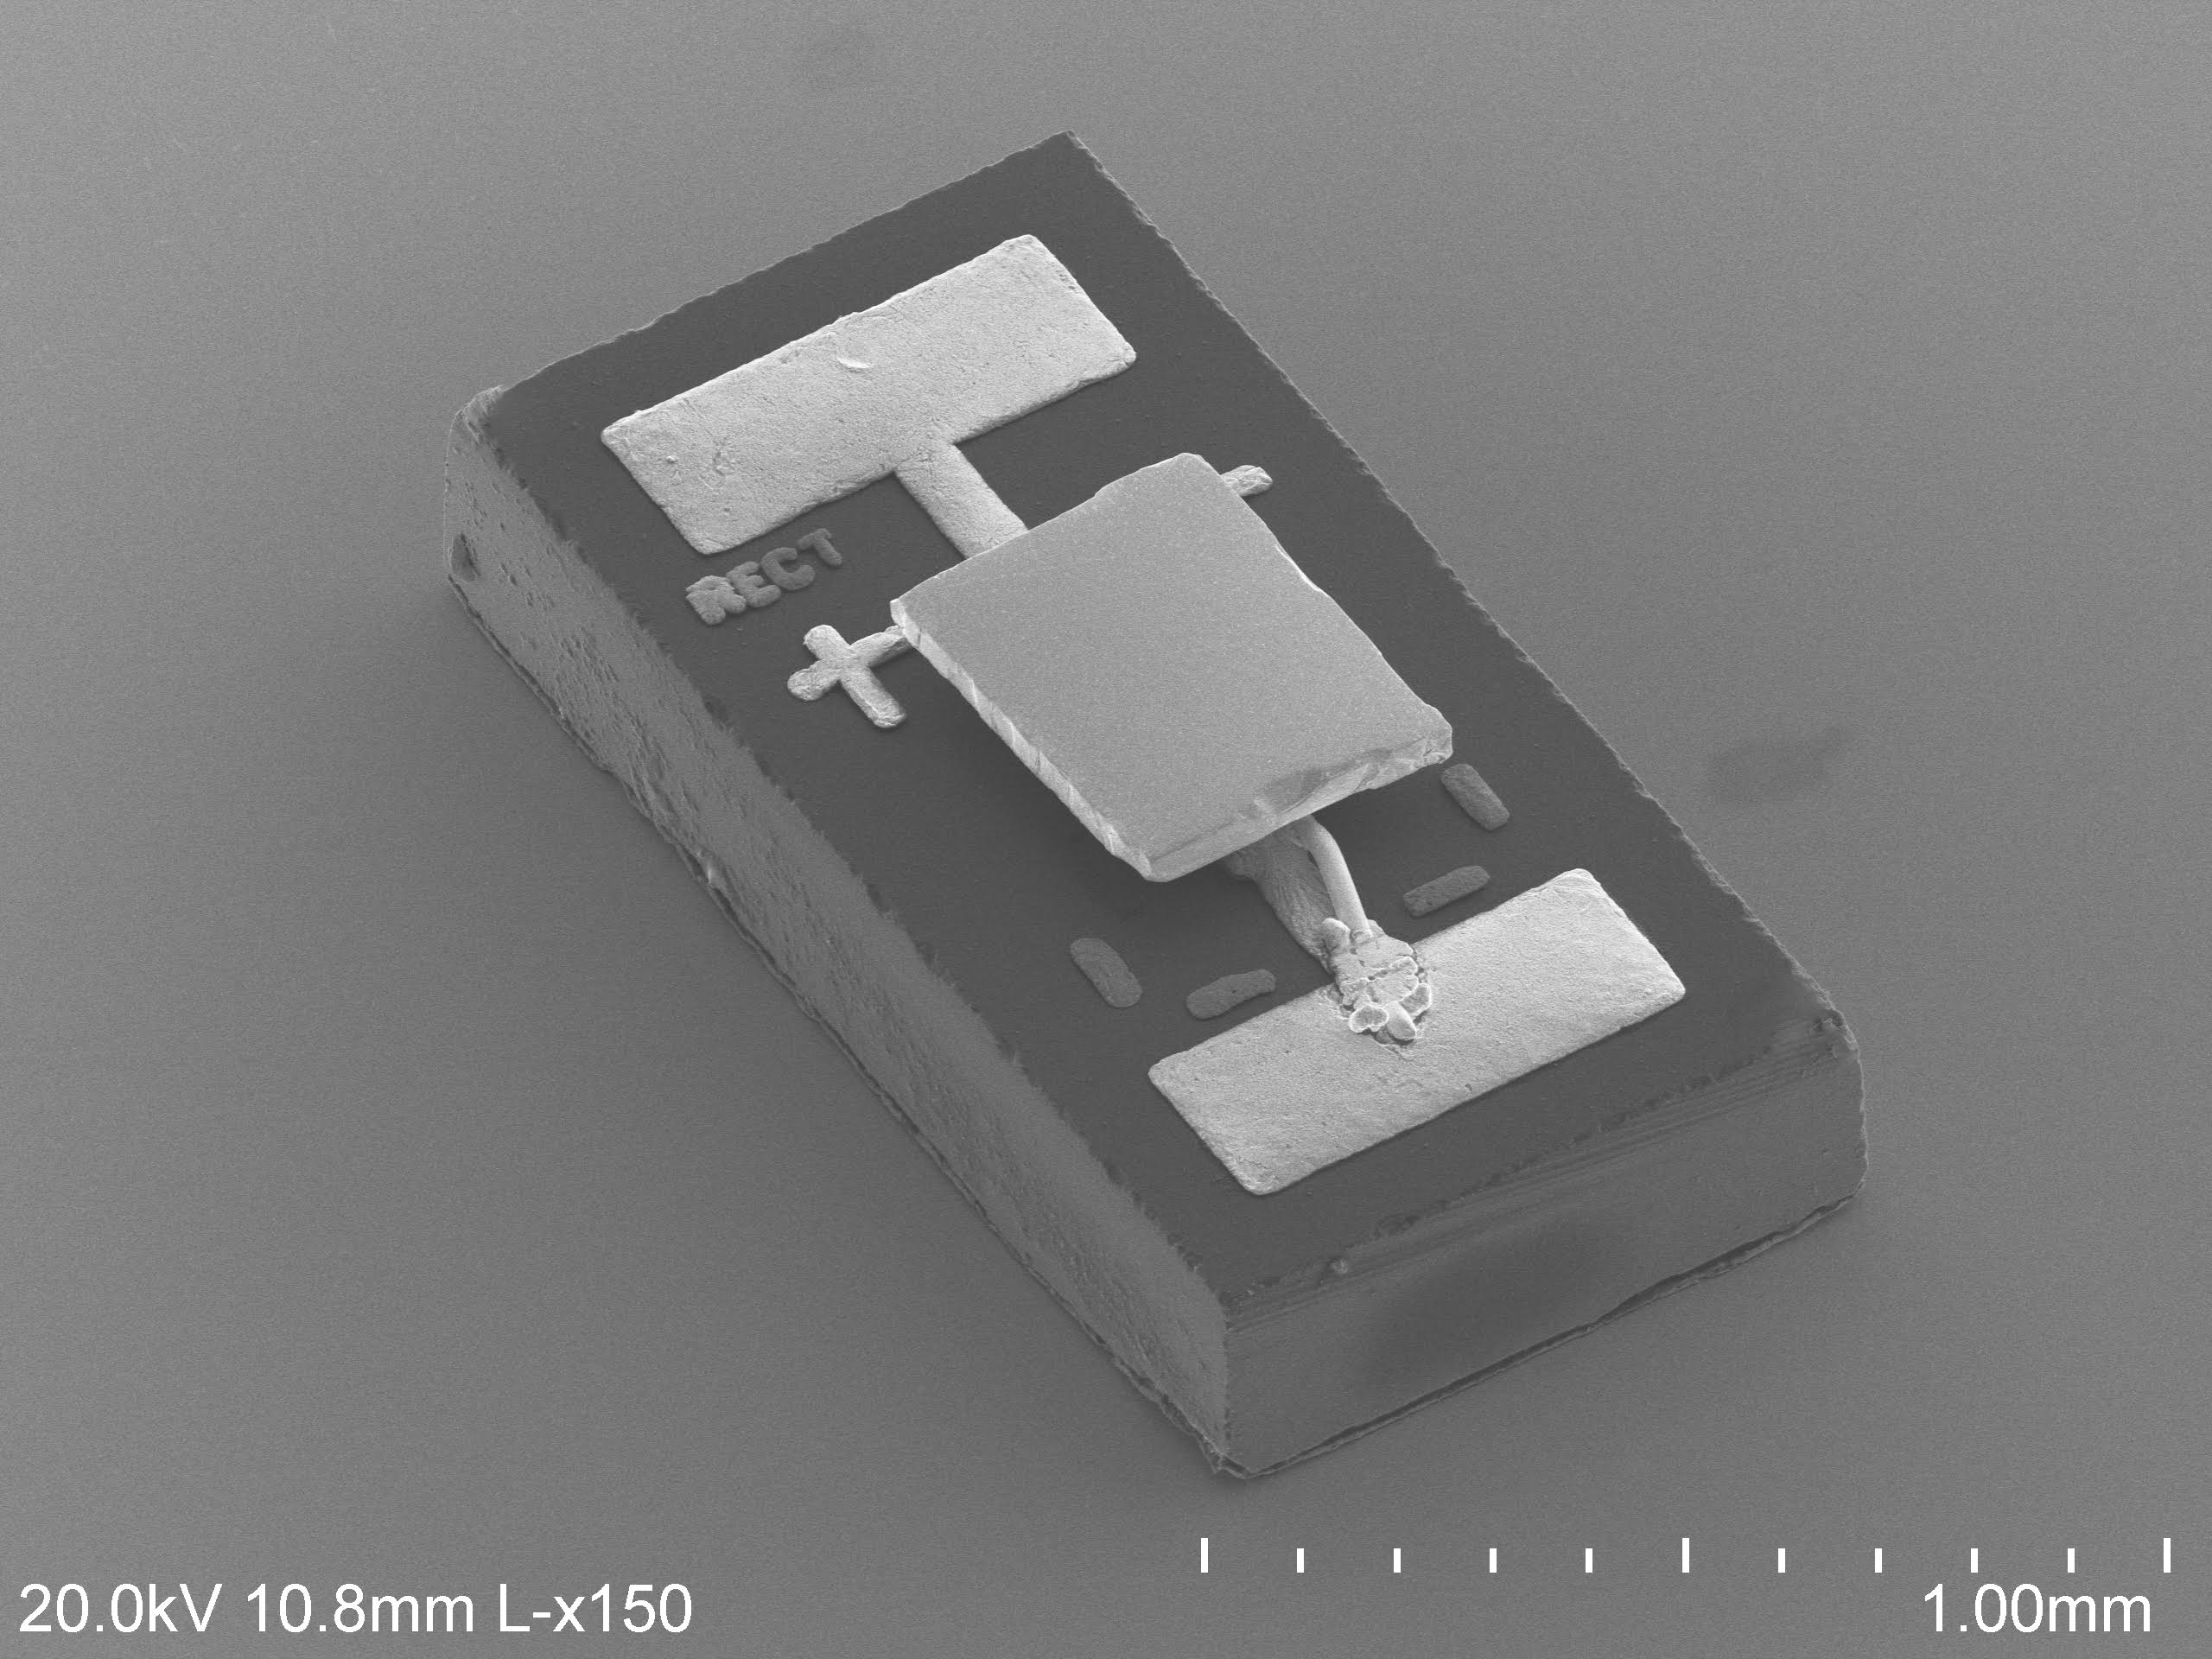 The U-M team modified an infrared photodiode about the size of a grain of rice, shown in this electron microscope image. They smoothed its surface so that they could place it in close proximity to a custom-made calorimeter, just 55 nanometers (0.000055 millimeters) between them. The calorimeter's measurements showed that the photodiode, when run with electrodes reversed, behaved as if it were at a lower temperature, and cooled down the calorimeter. Image credit: Linxiao Zhu